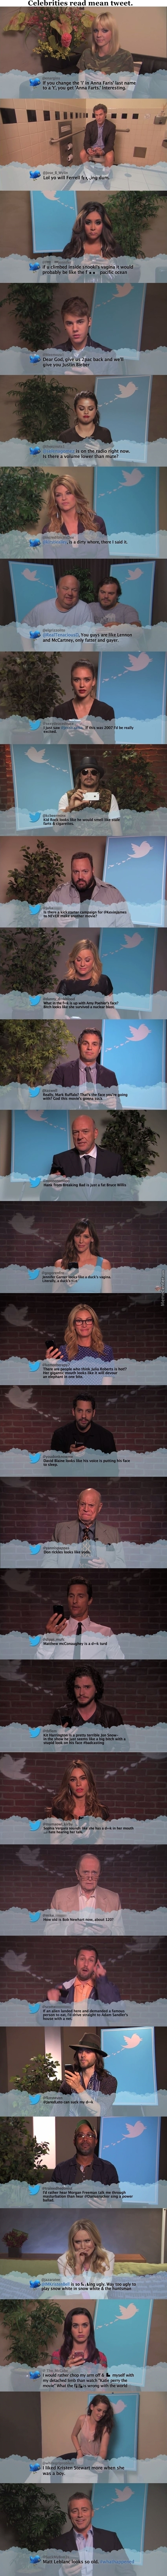 Best Of : Celebrities Read Mean Tweets. - Jimmy Kimmel Show